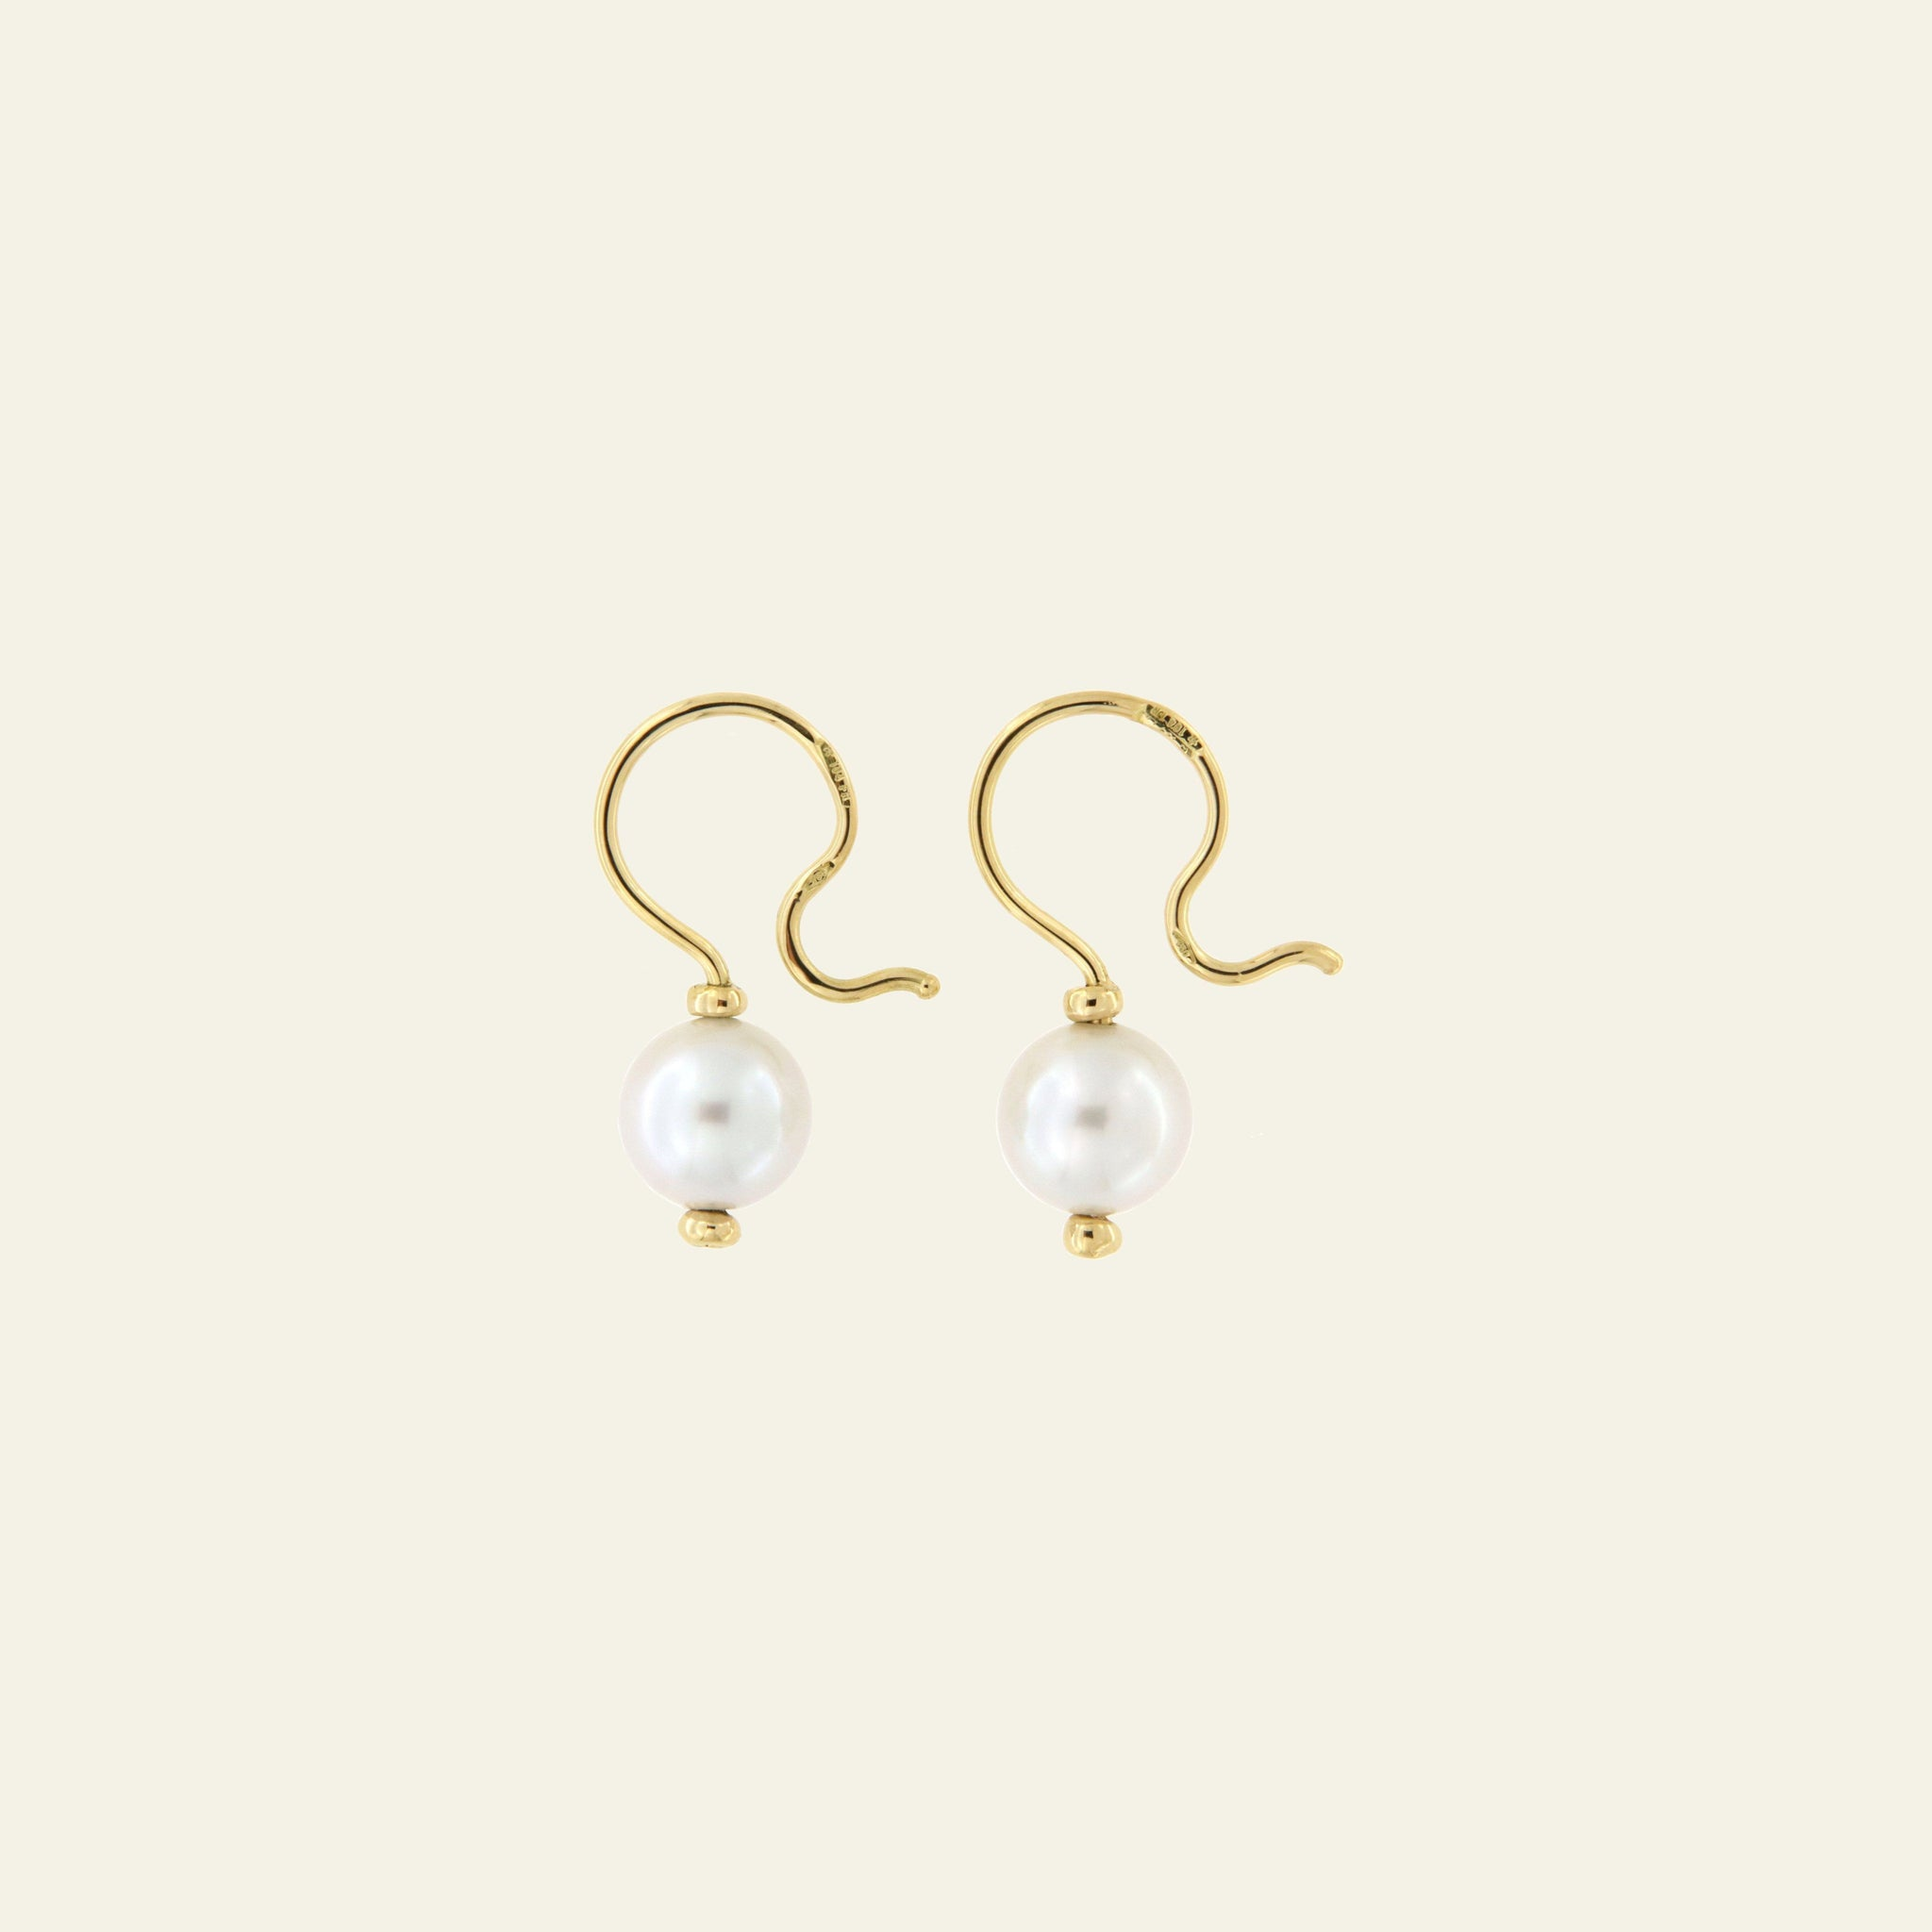 Orecchini Cielo <br /> esemplare N.31 <br /> Perle South Sea <br /> Oro Fairtrade 18k